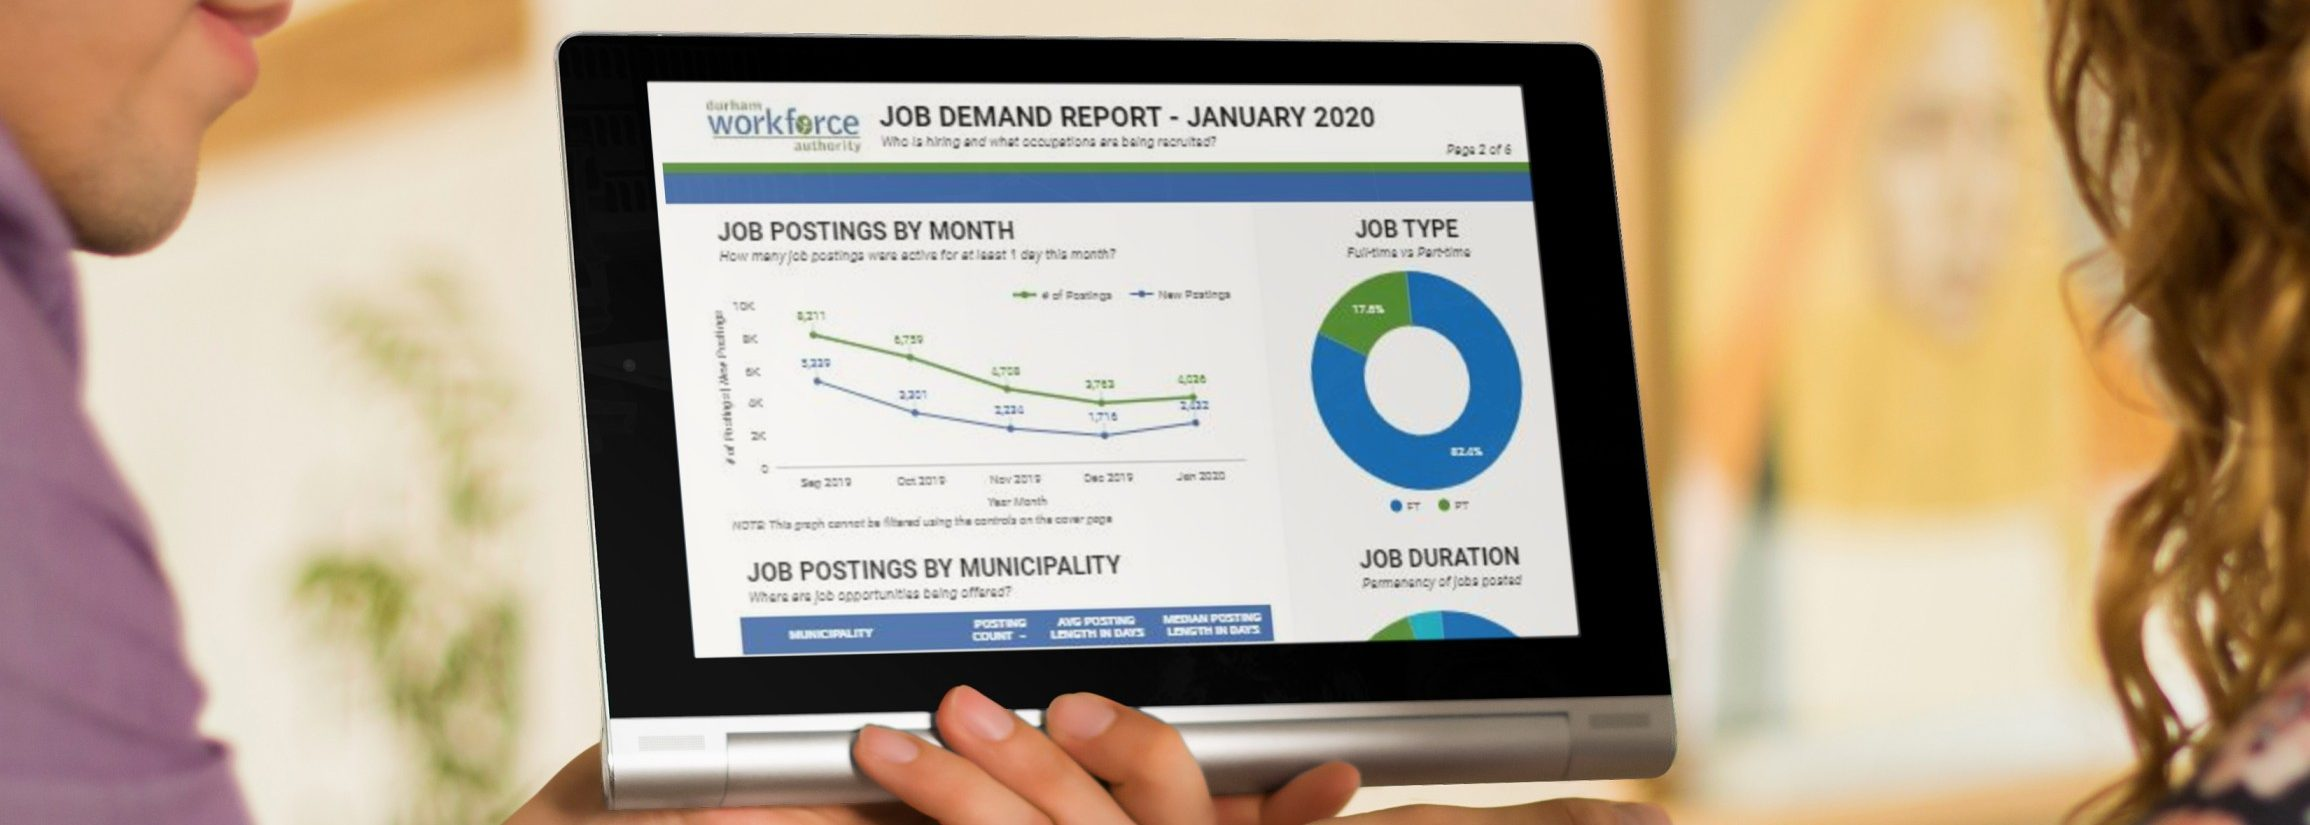 job demand report